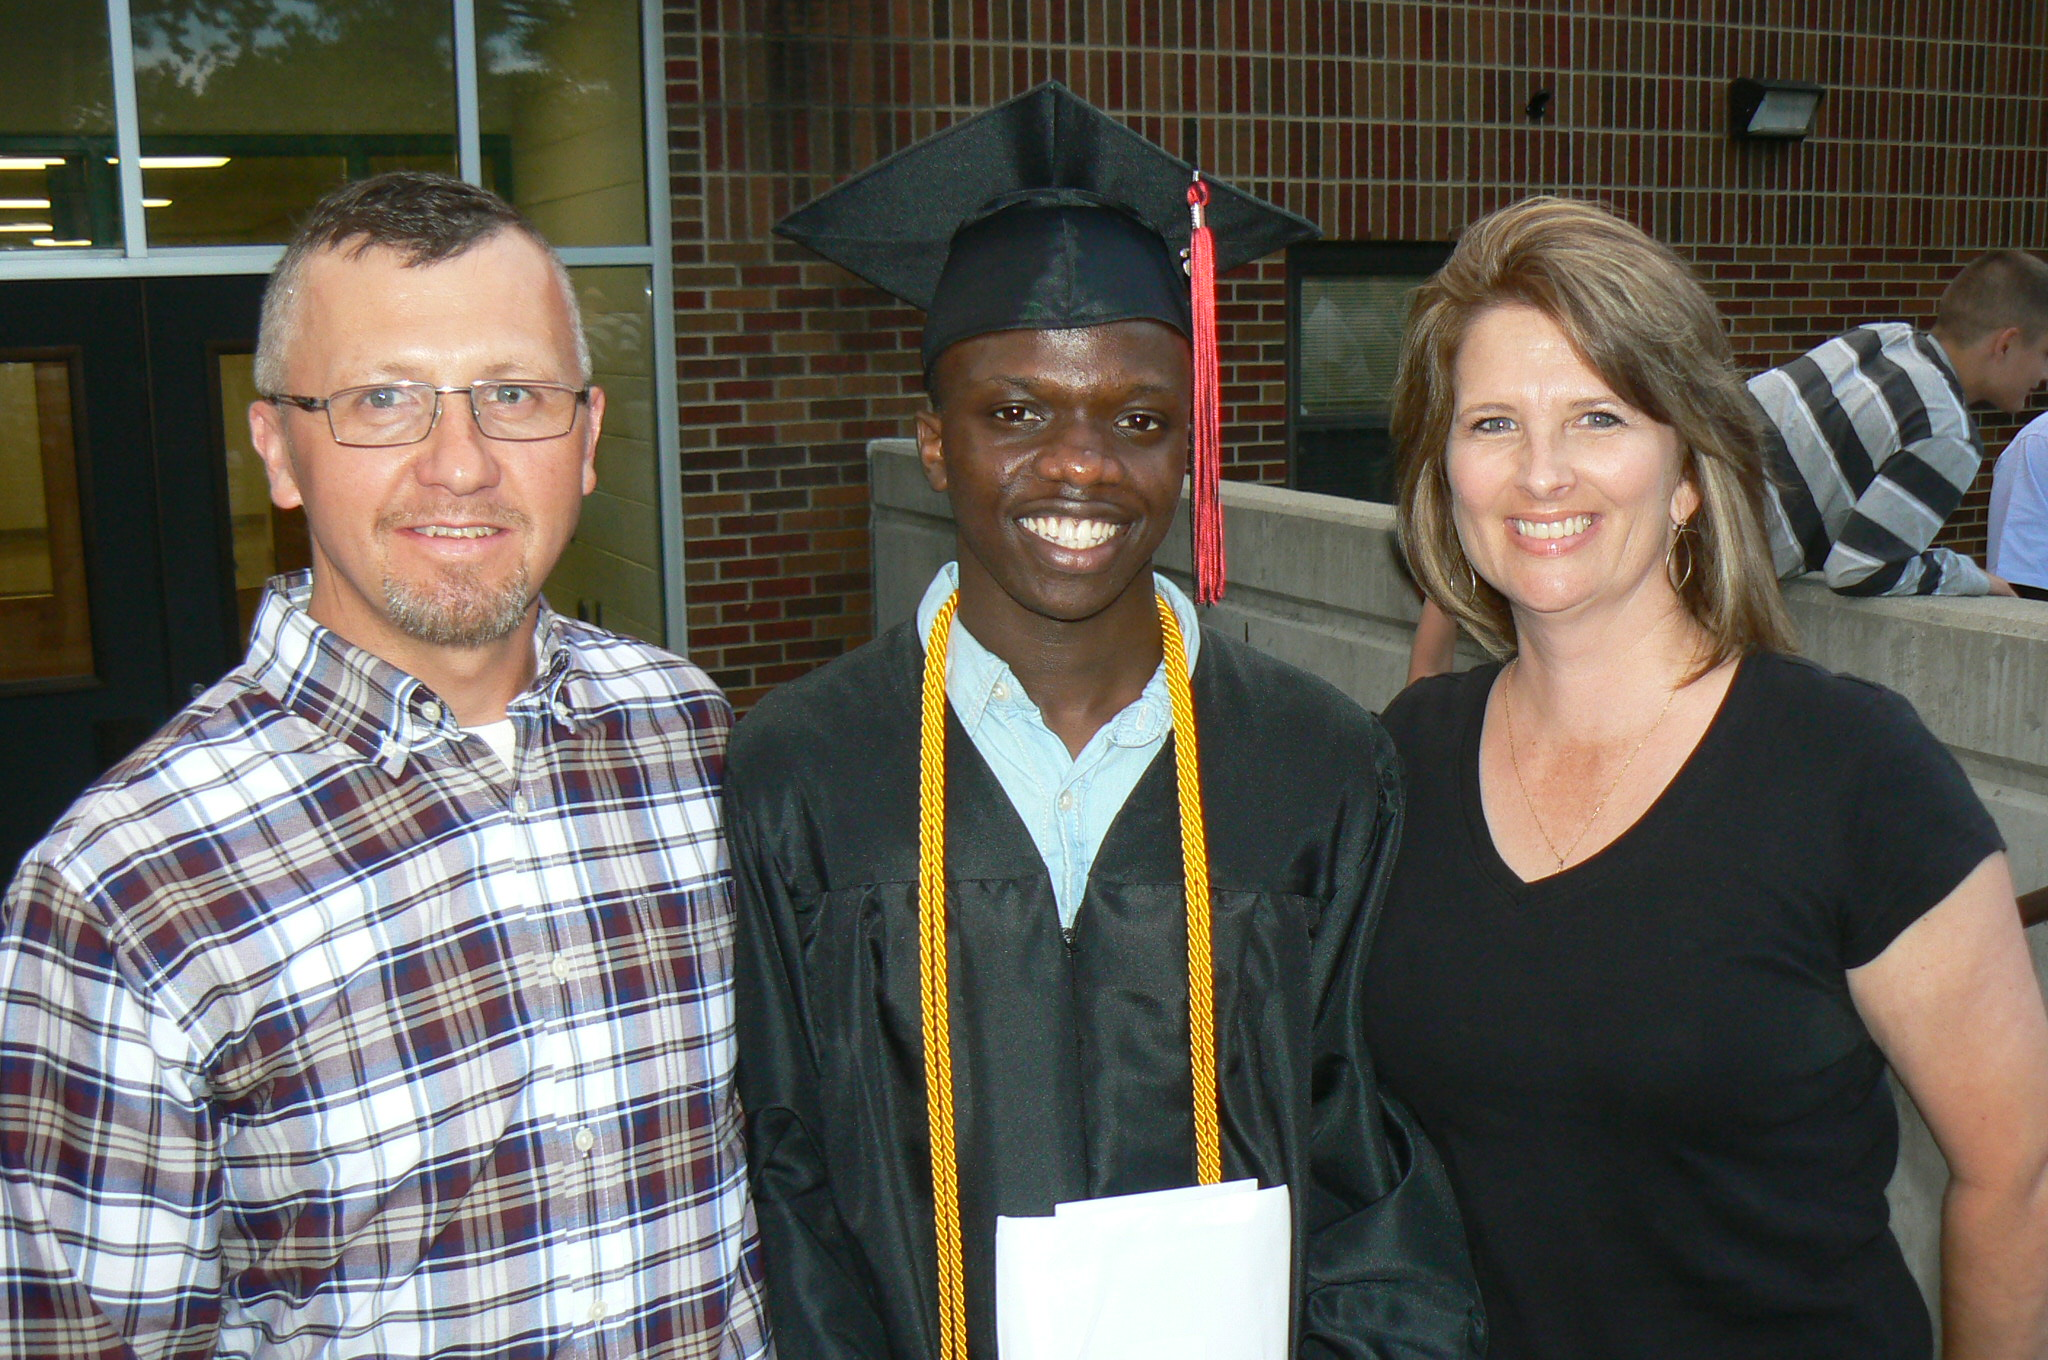 Jerry at his high school graduation with his former houseparents Jake & Tracy